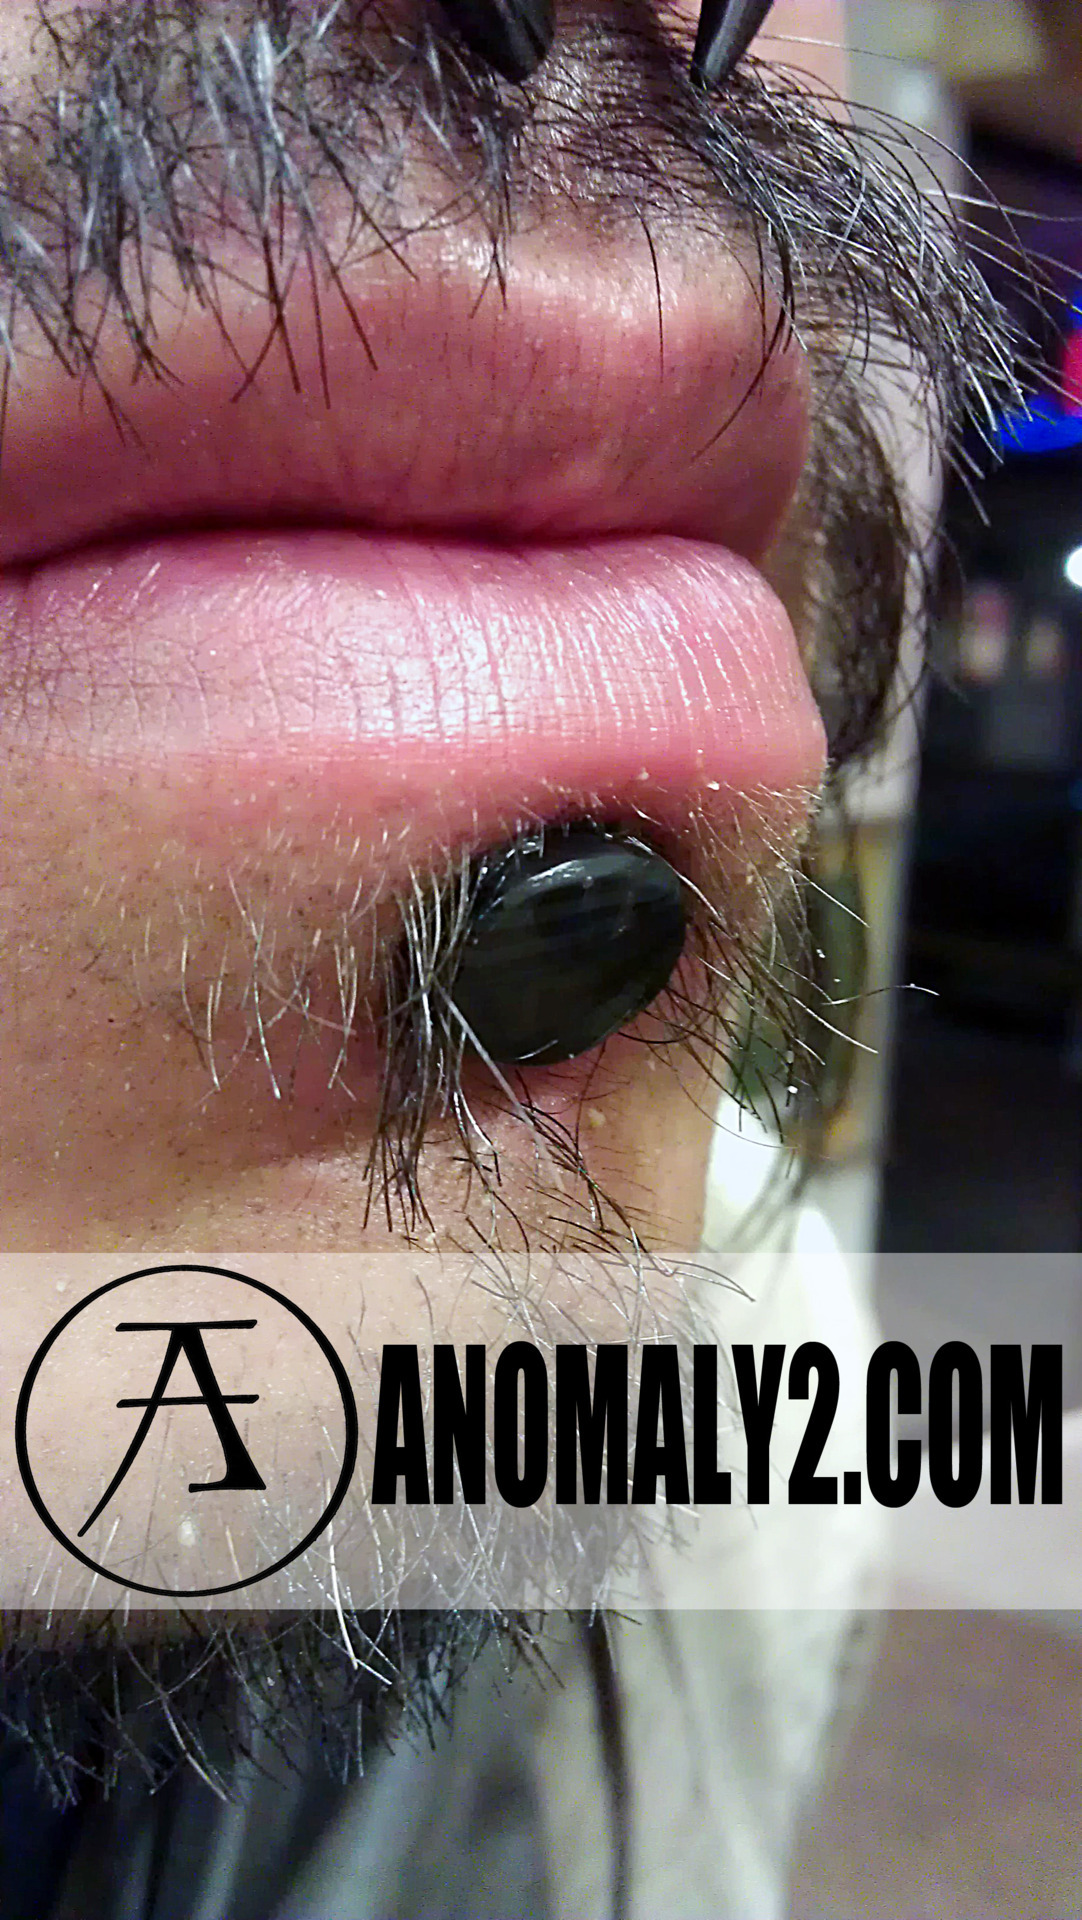 ANOMALY's own Brett Perkins made this Obsidian Labret piece by hand for a customer. If you look closely you may see some banding in the stone!